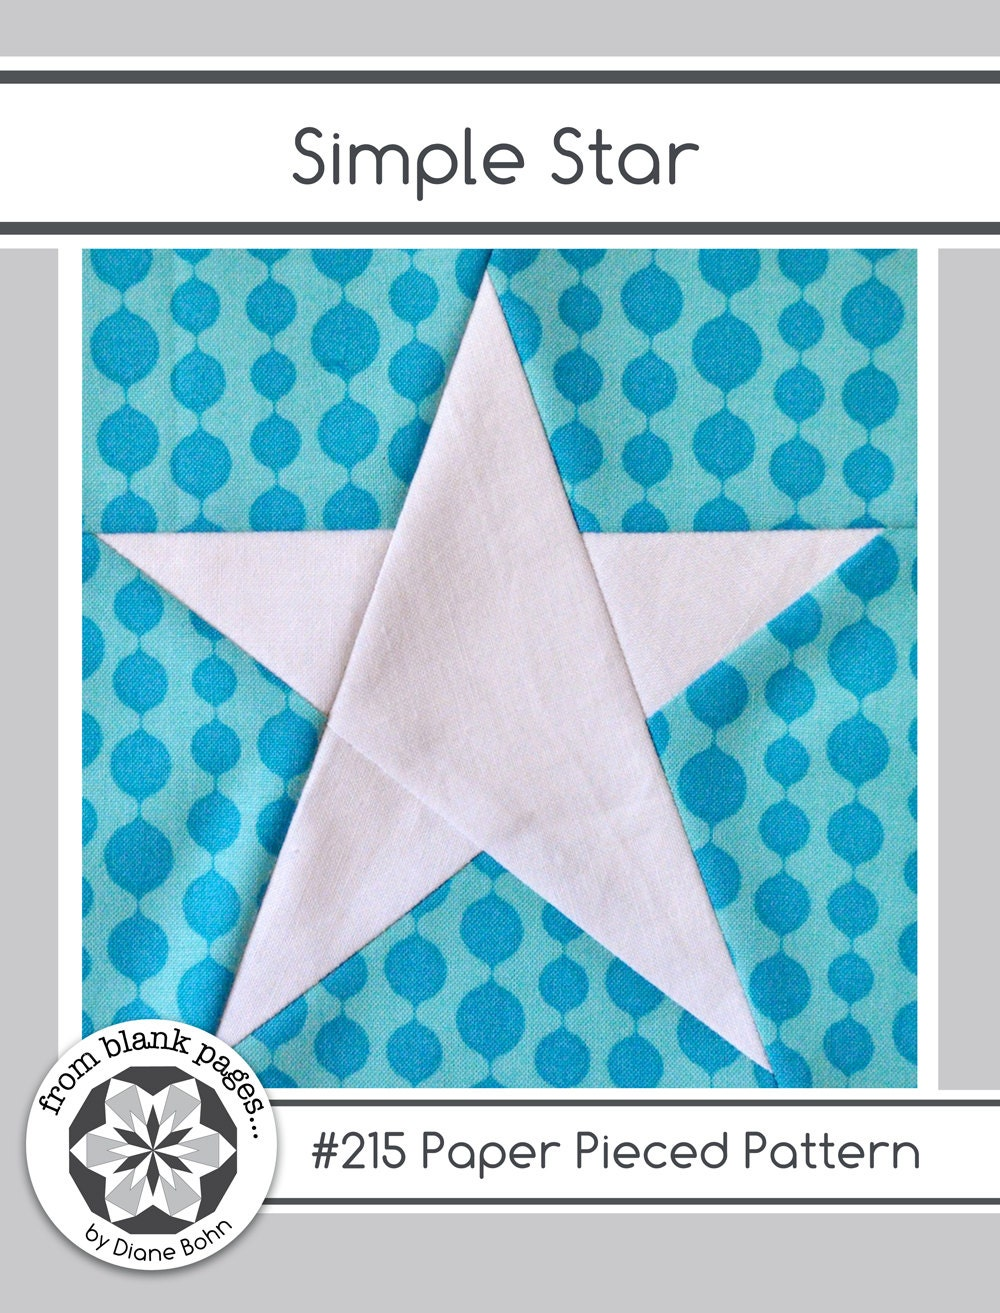 Simple Star 215 Paper Pieced Quilt Pattern PDF 3 Sizes : simple star quilt pattern - Adamdwight.com